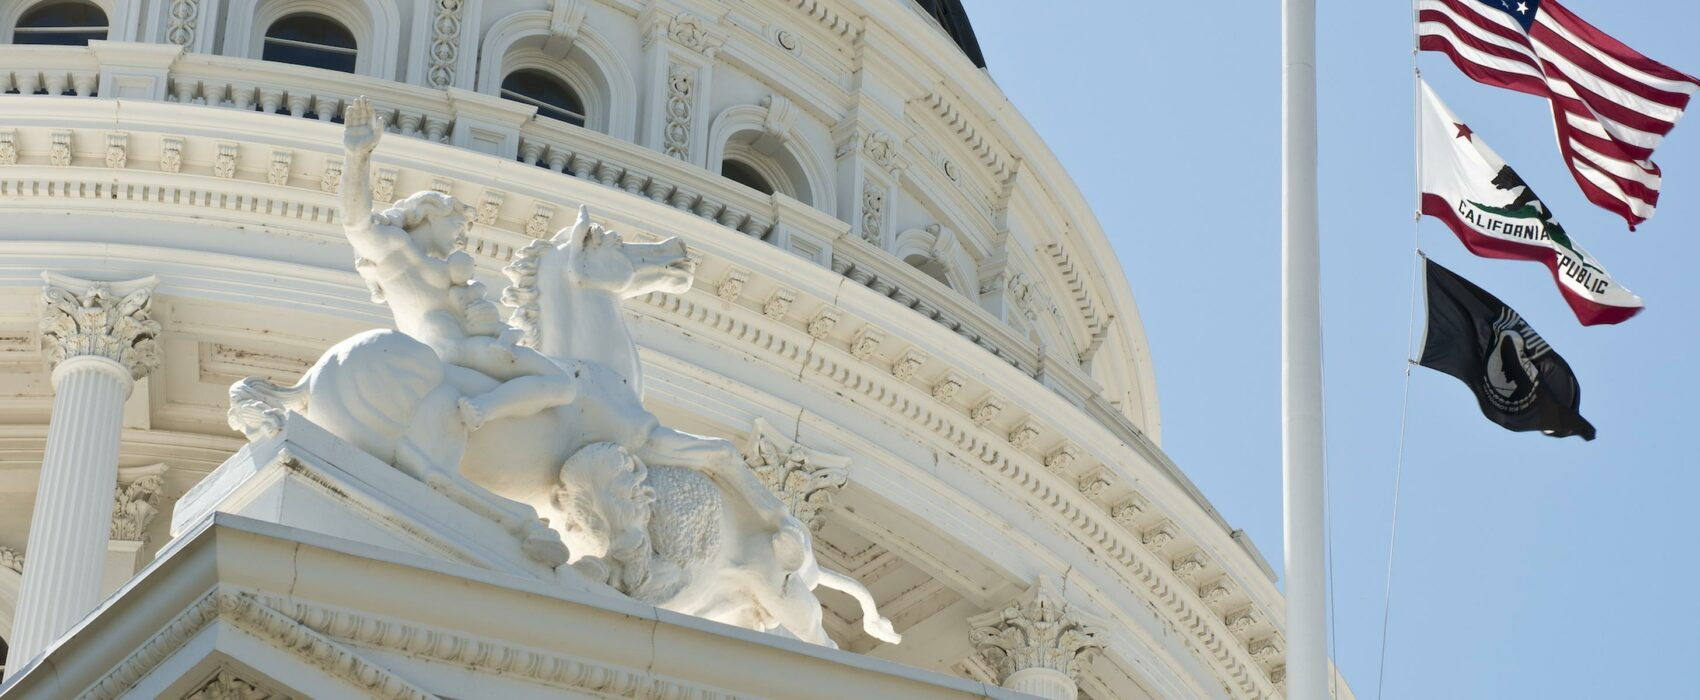 Access-Driven Calif. Reforms Likely To Spur Big Pushback